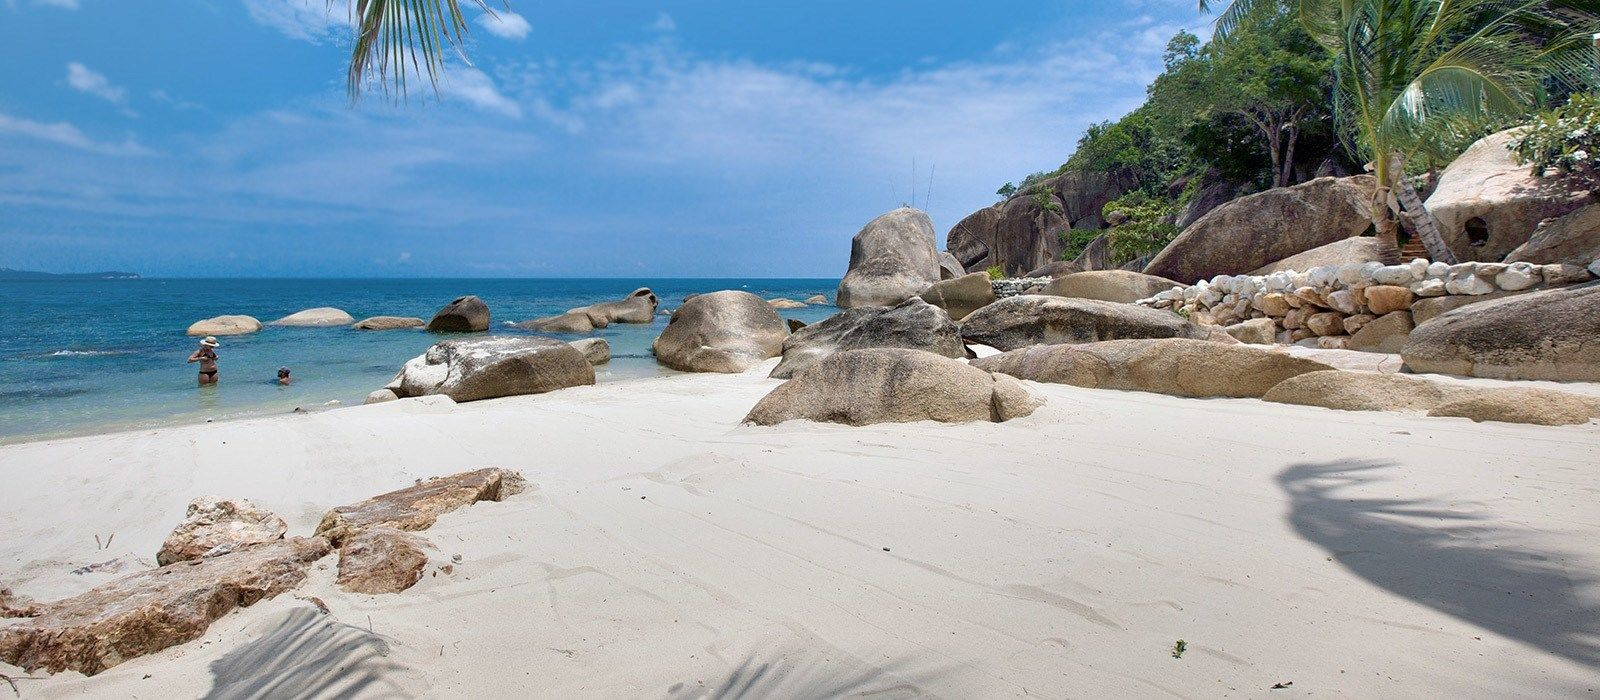 Historic Japan and Koh Samui Beach Escape Tour Trip 7